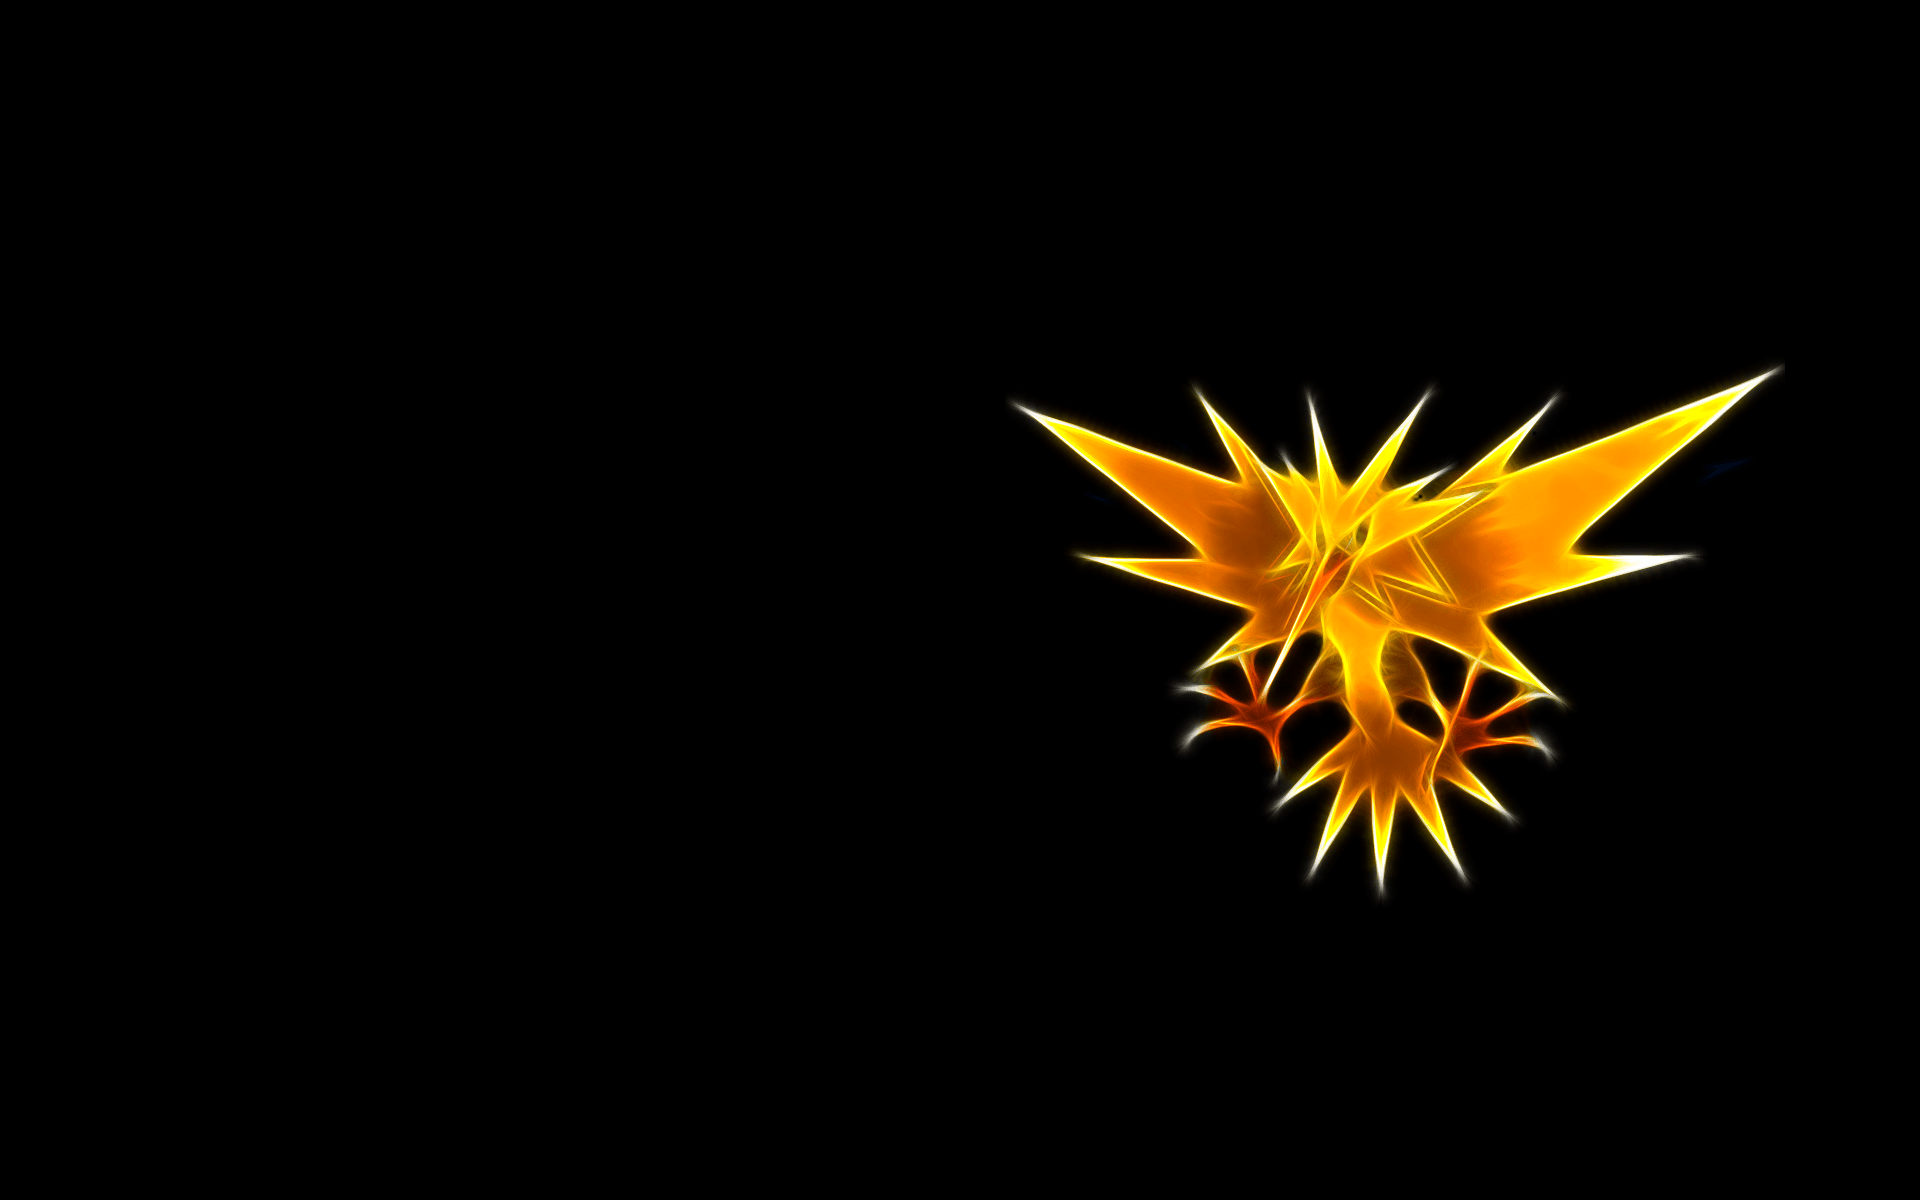 Zapdos Moltres Articuno Wallpapers